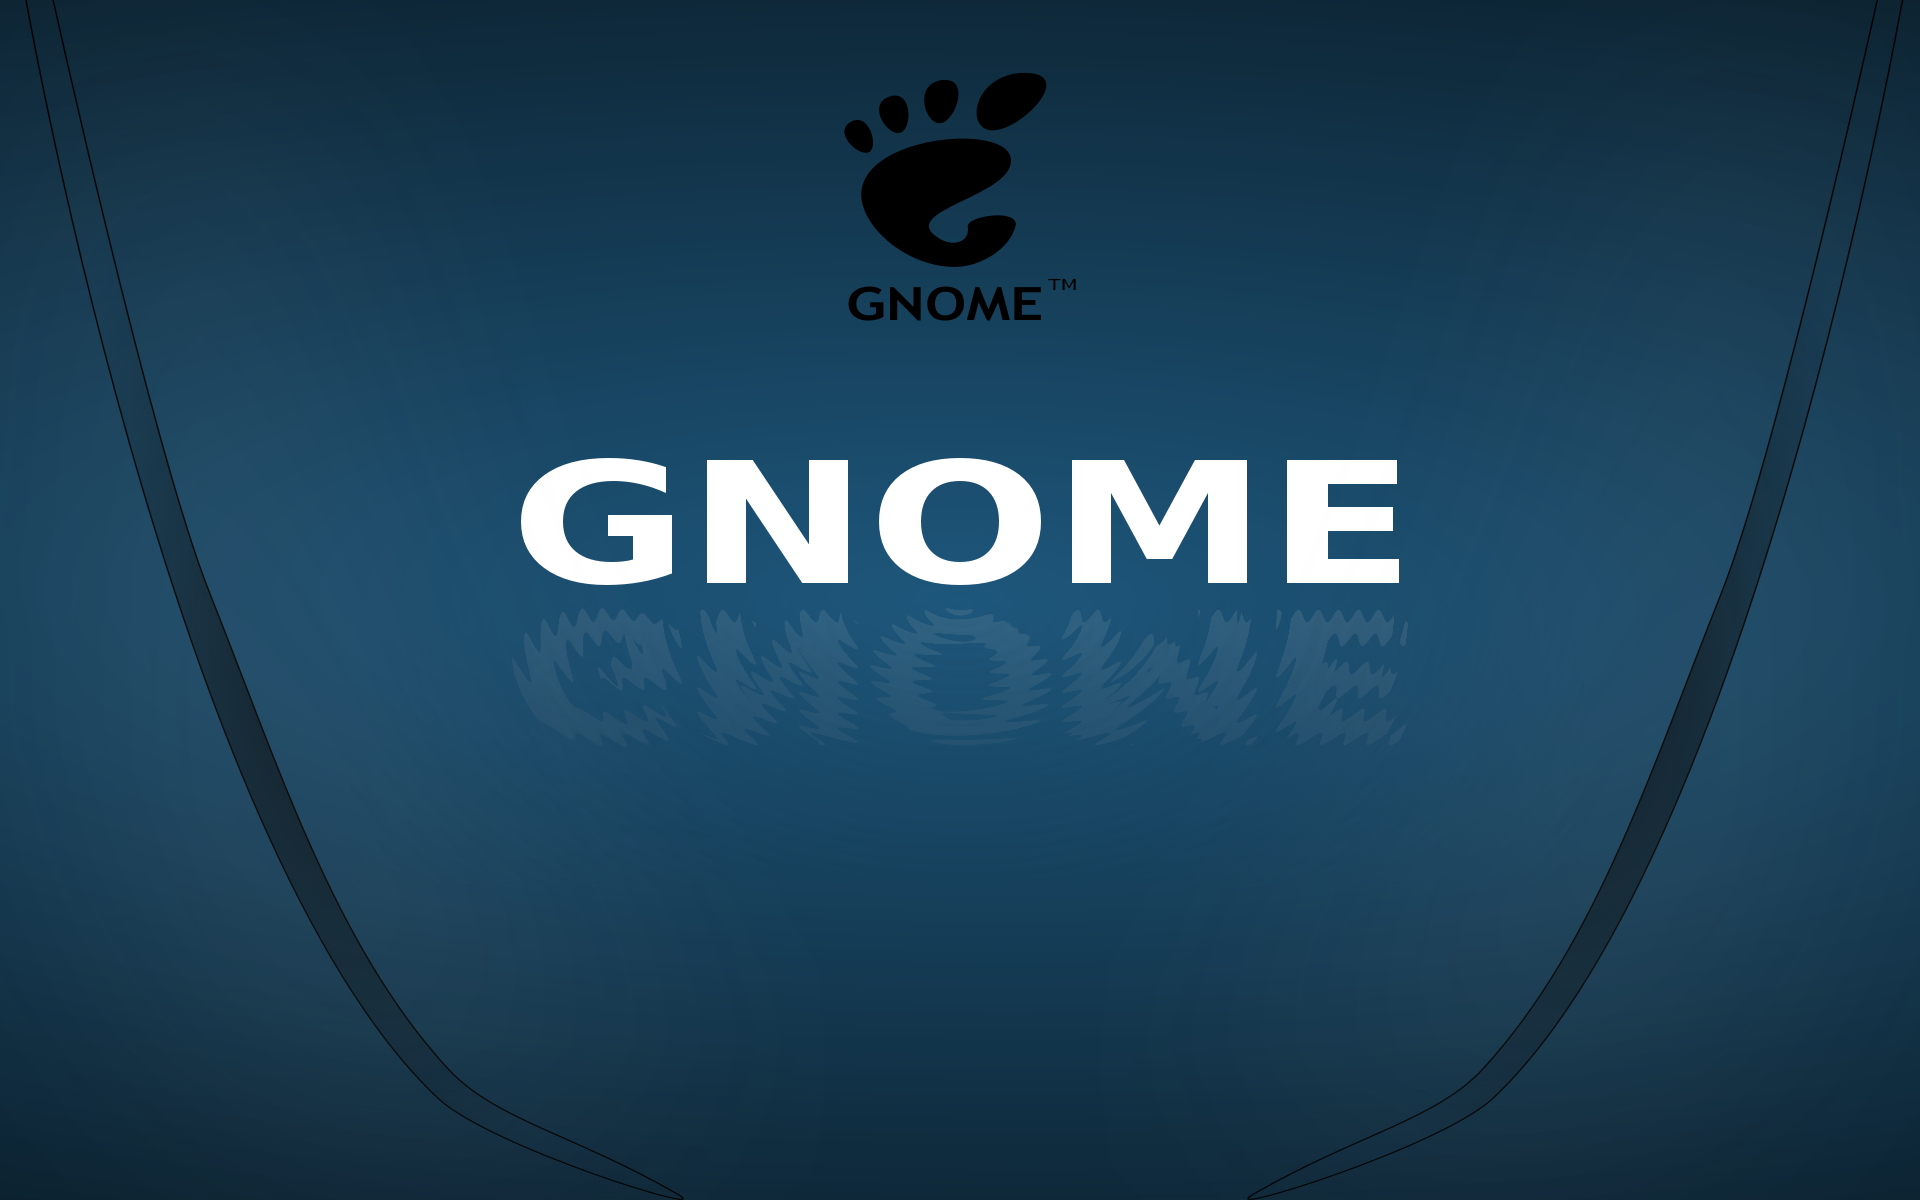 Macrons in Gnome